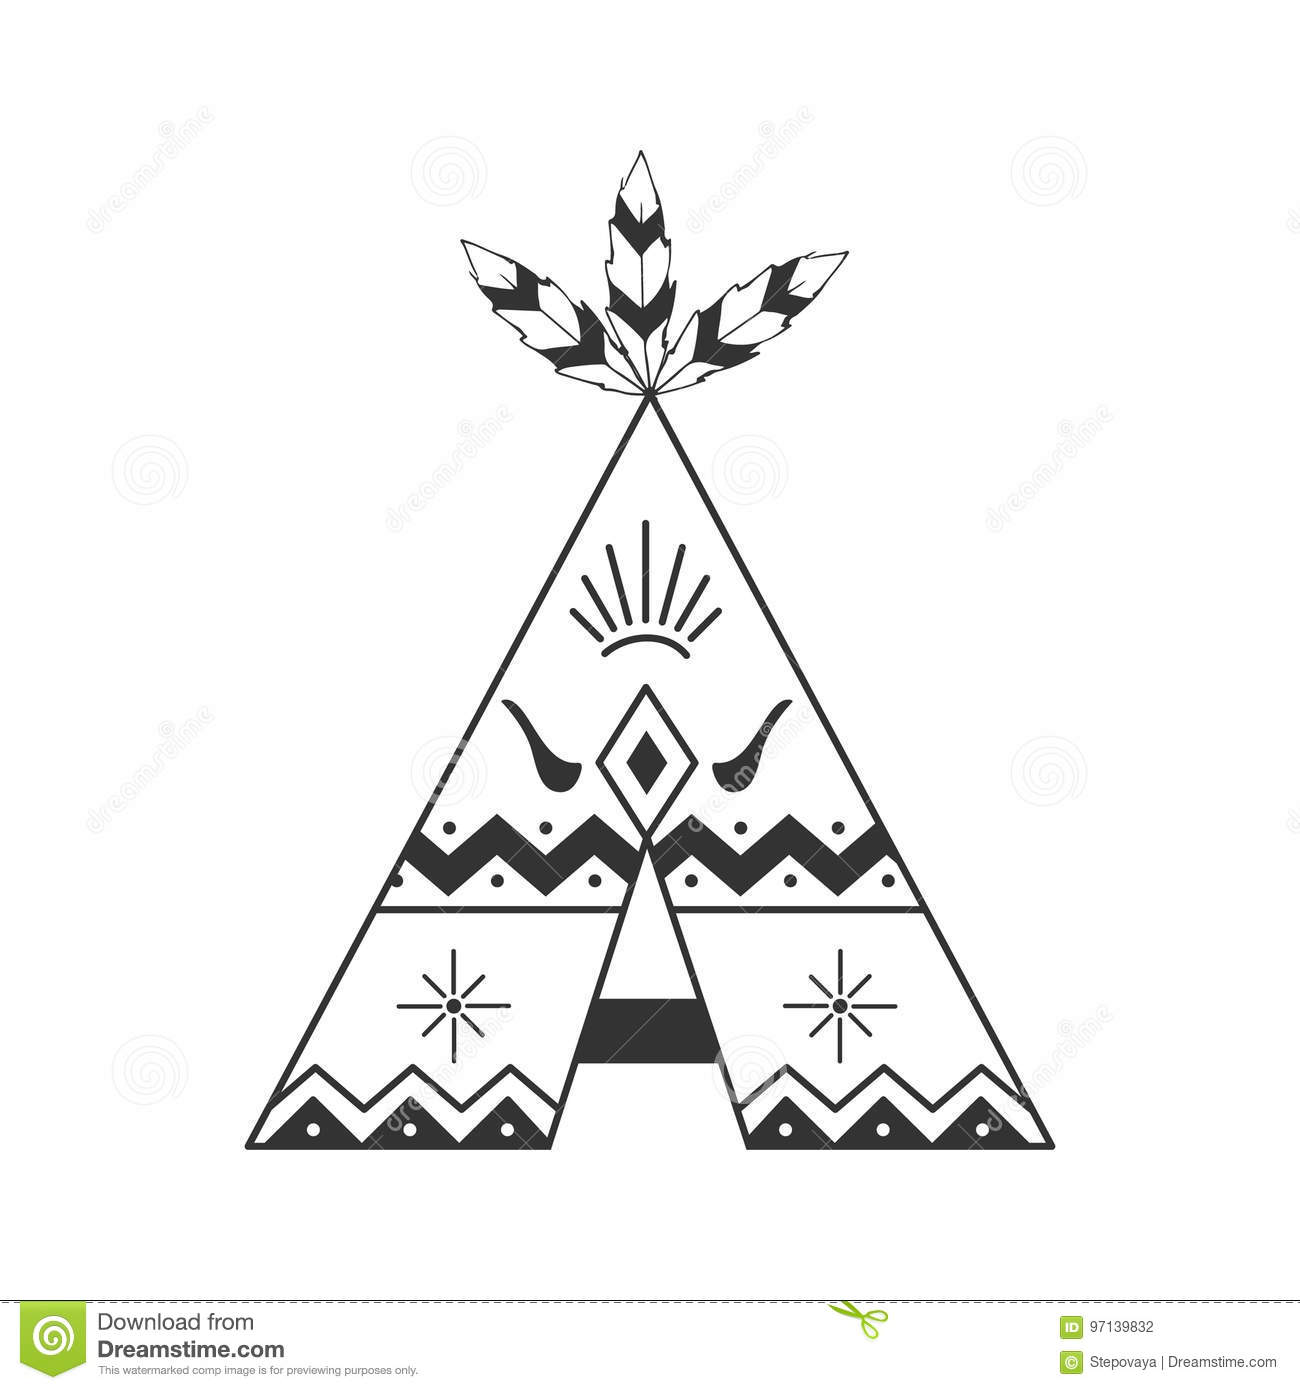 Cute Tipi Illustration On White With Feathers And Indian